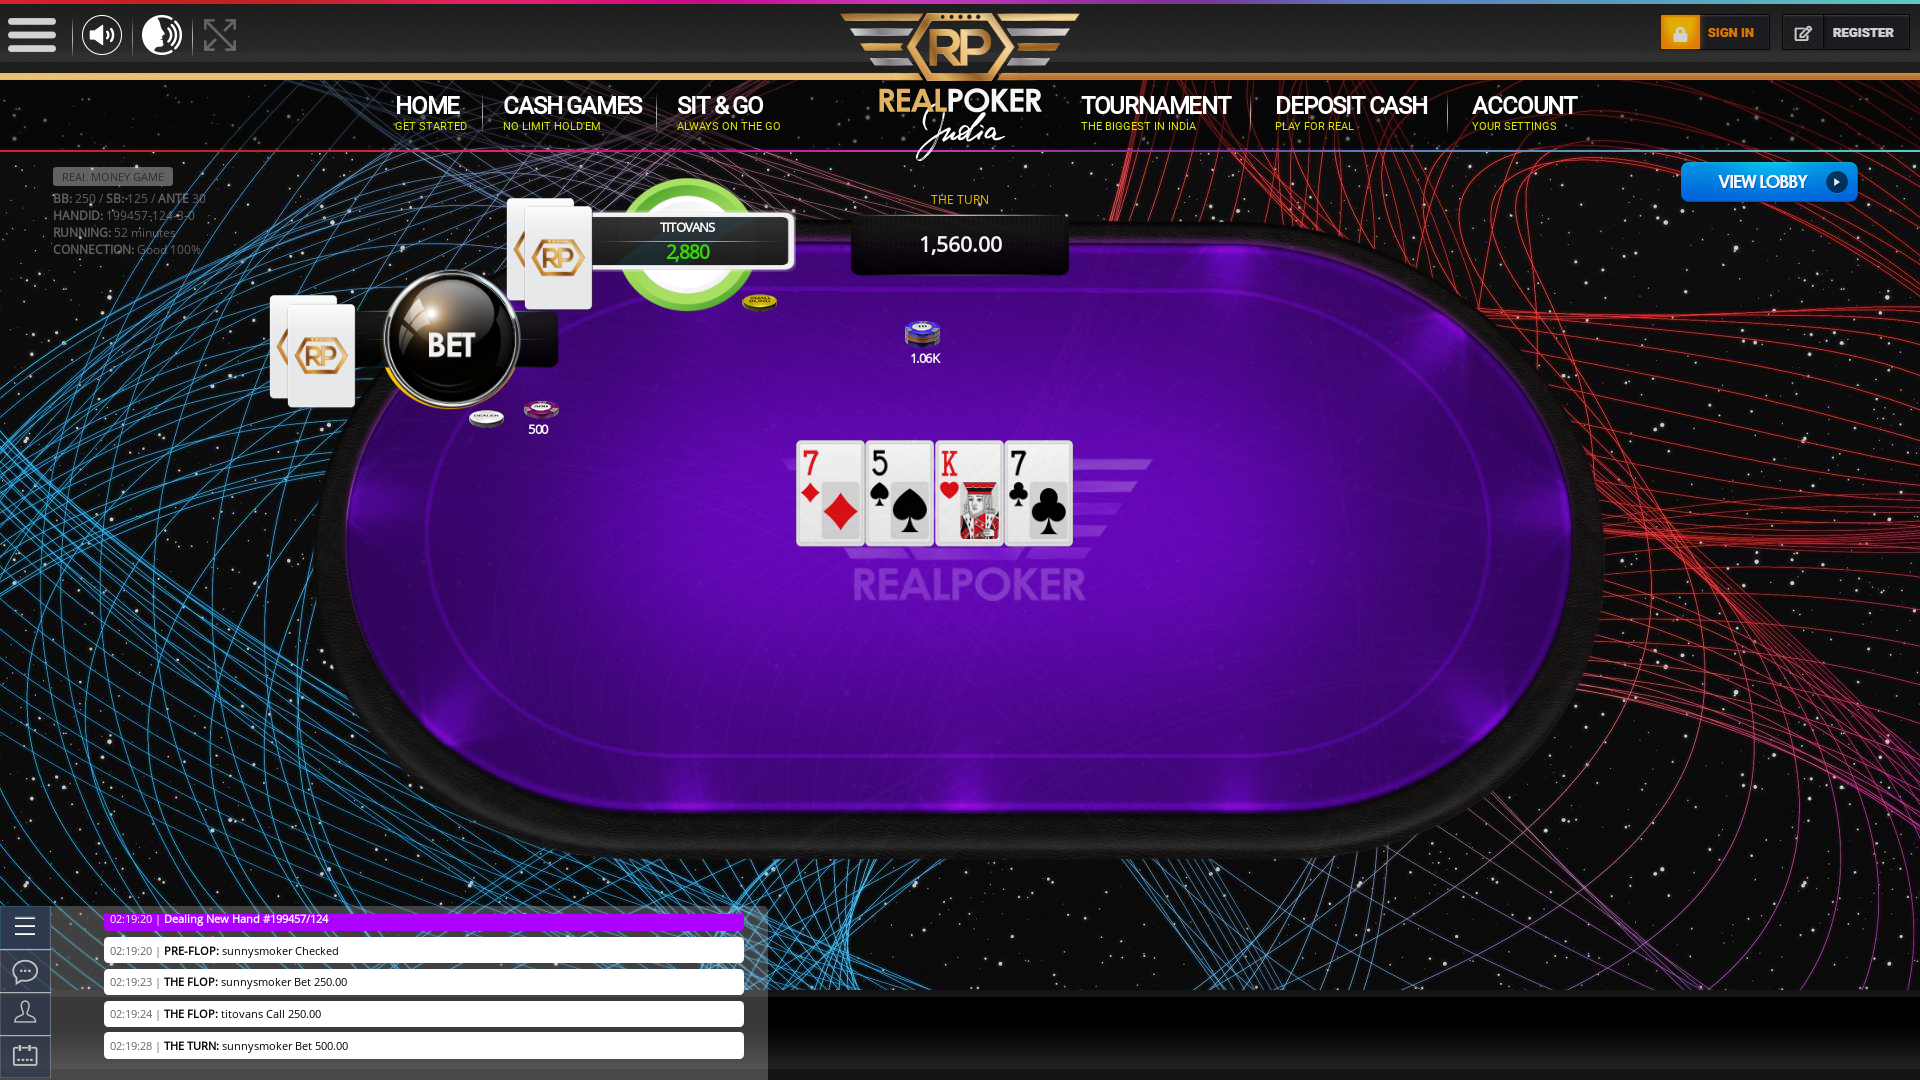 Real poker 10 player table in the 52nd minute of the match